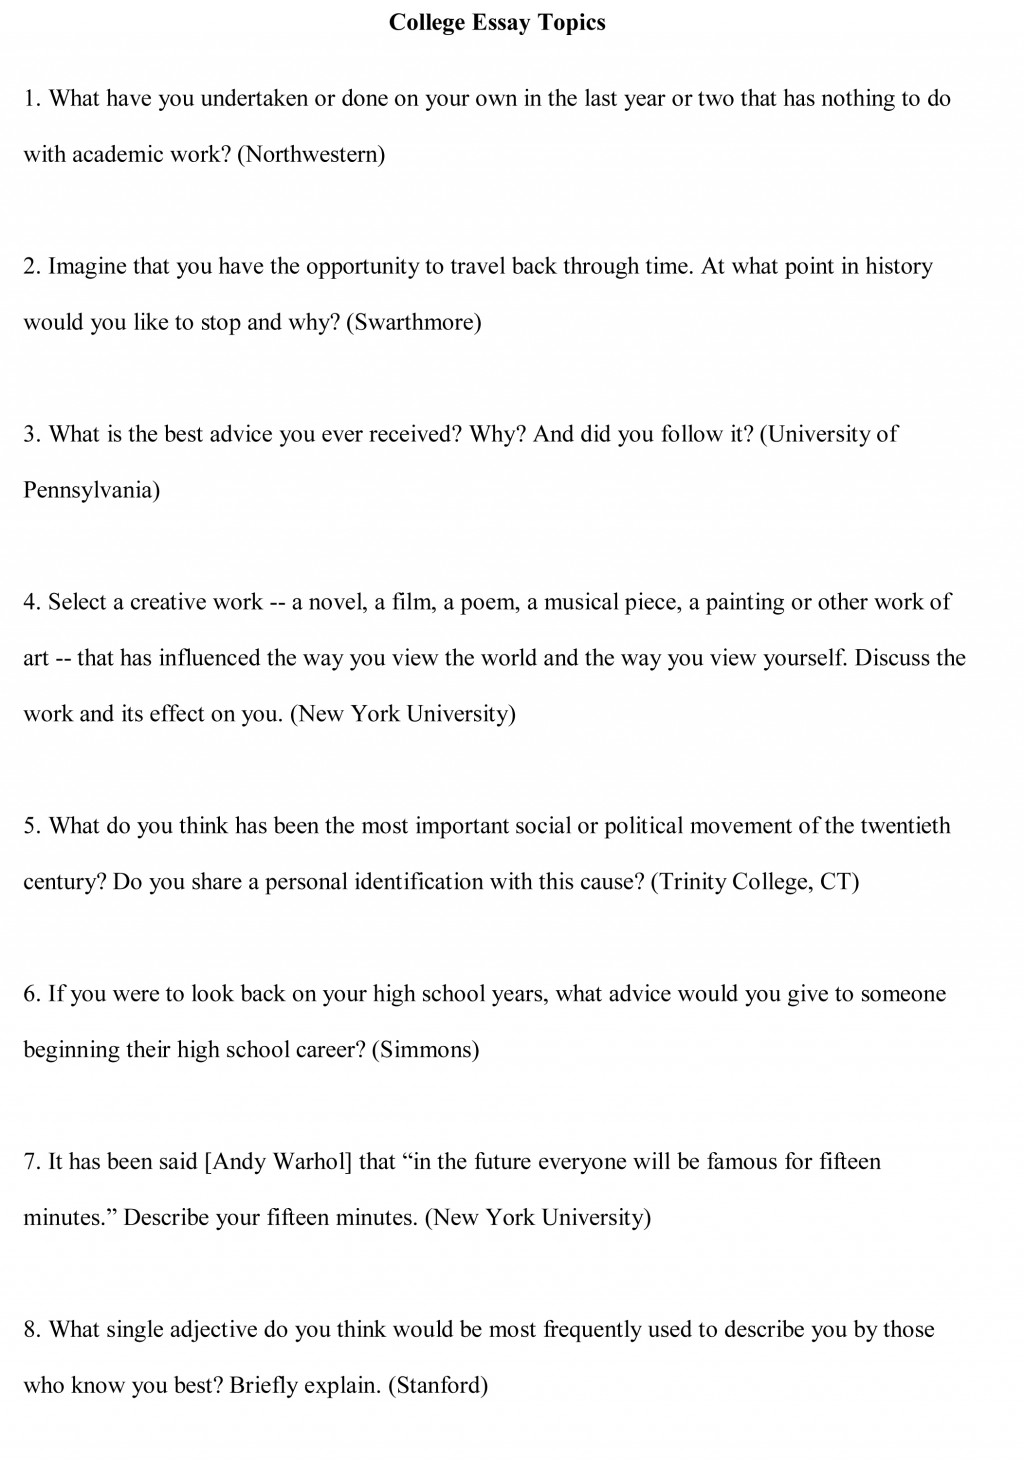 014 Essay Topics College Free Sample1 Archaicawful Writing For 6th Graders List Ielts Prompts 5th Large